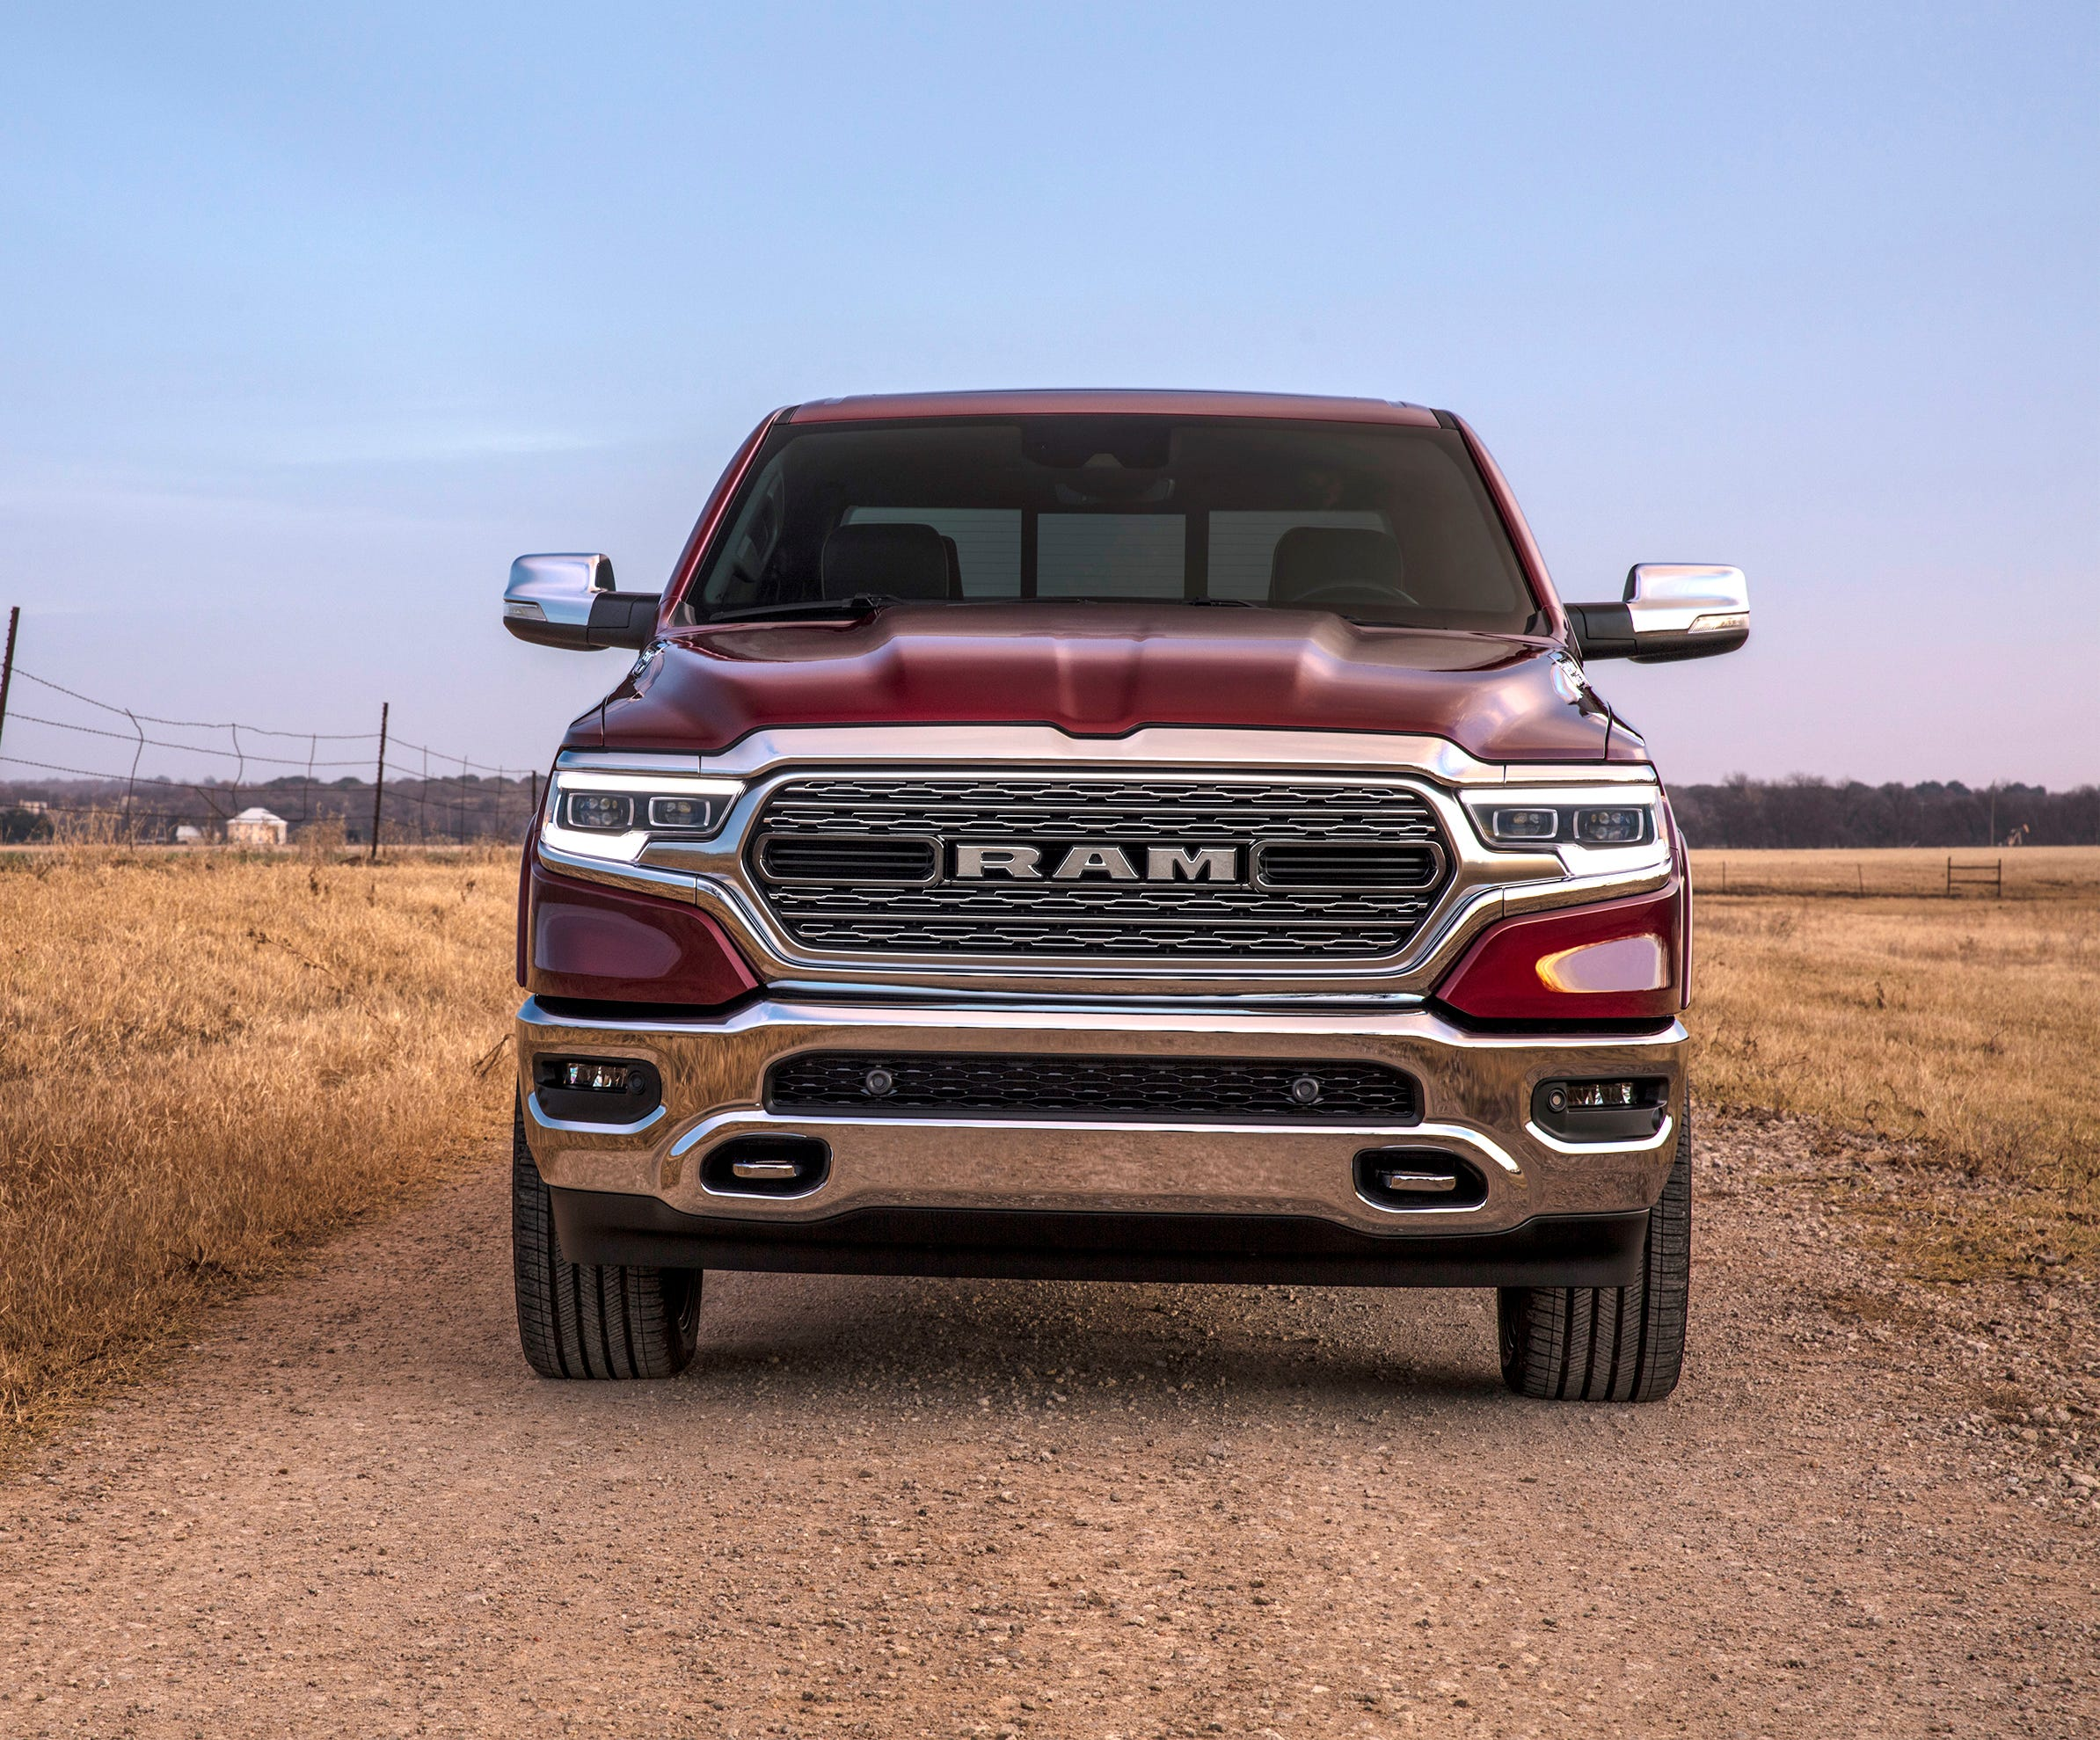 Top christmas gifts for girlfriend 2019 ram